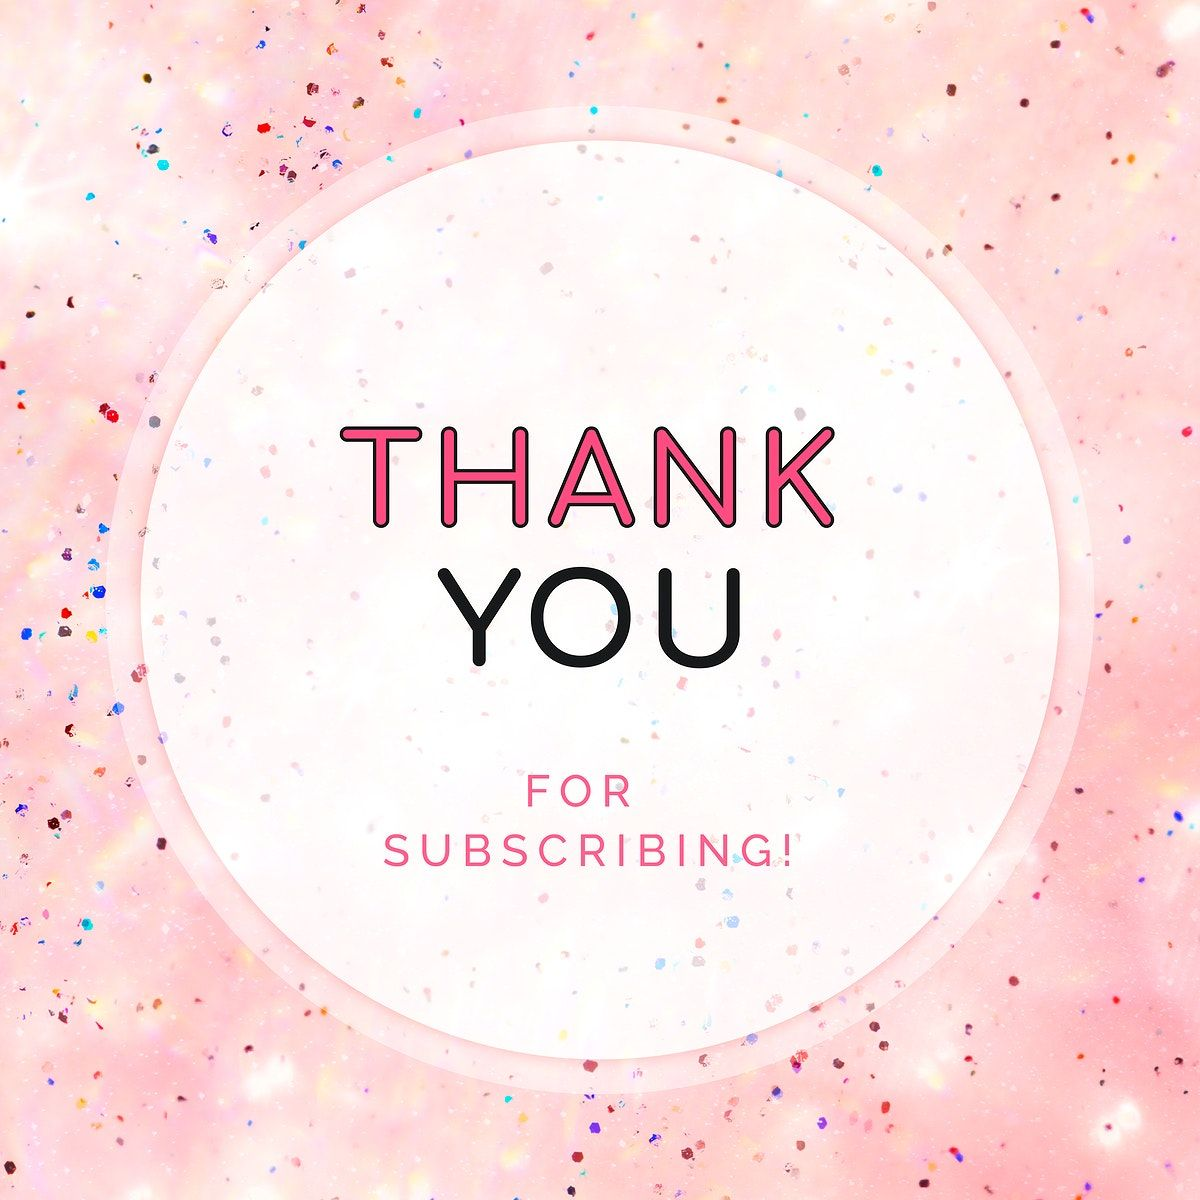 Download premium vector of Thank you for subscribing ad